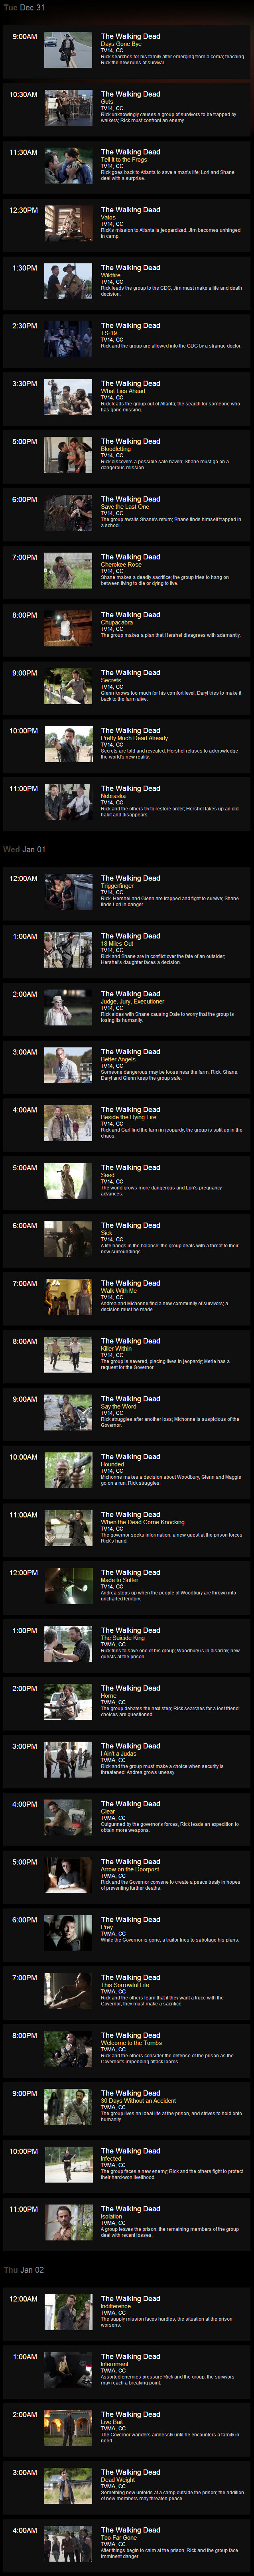 The Walking Dead New Year's Eve Marathon Schedule